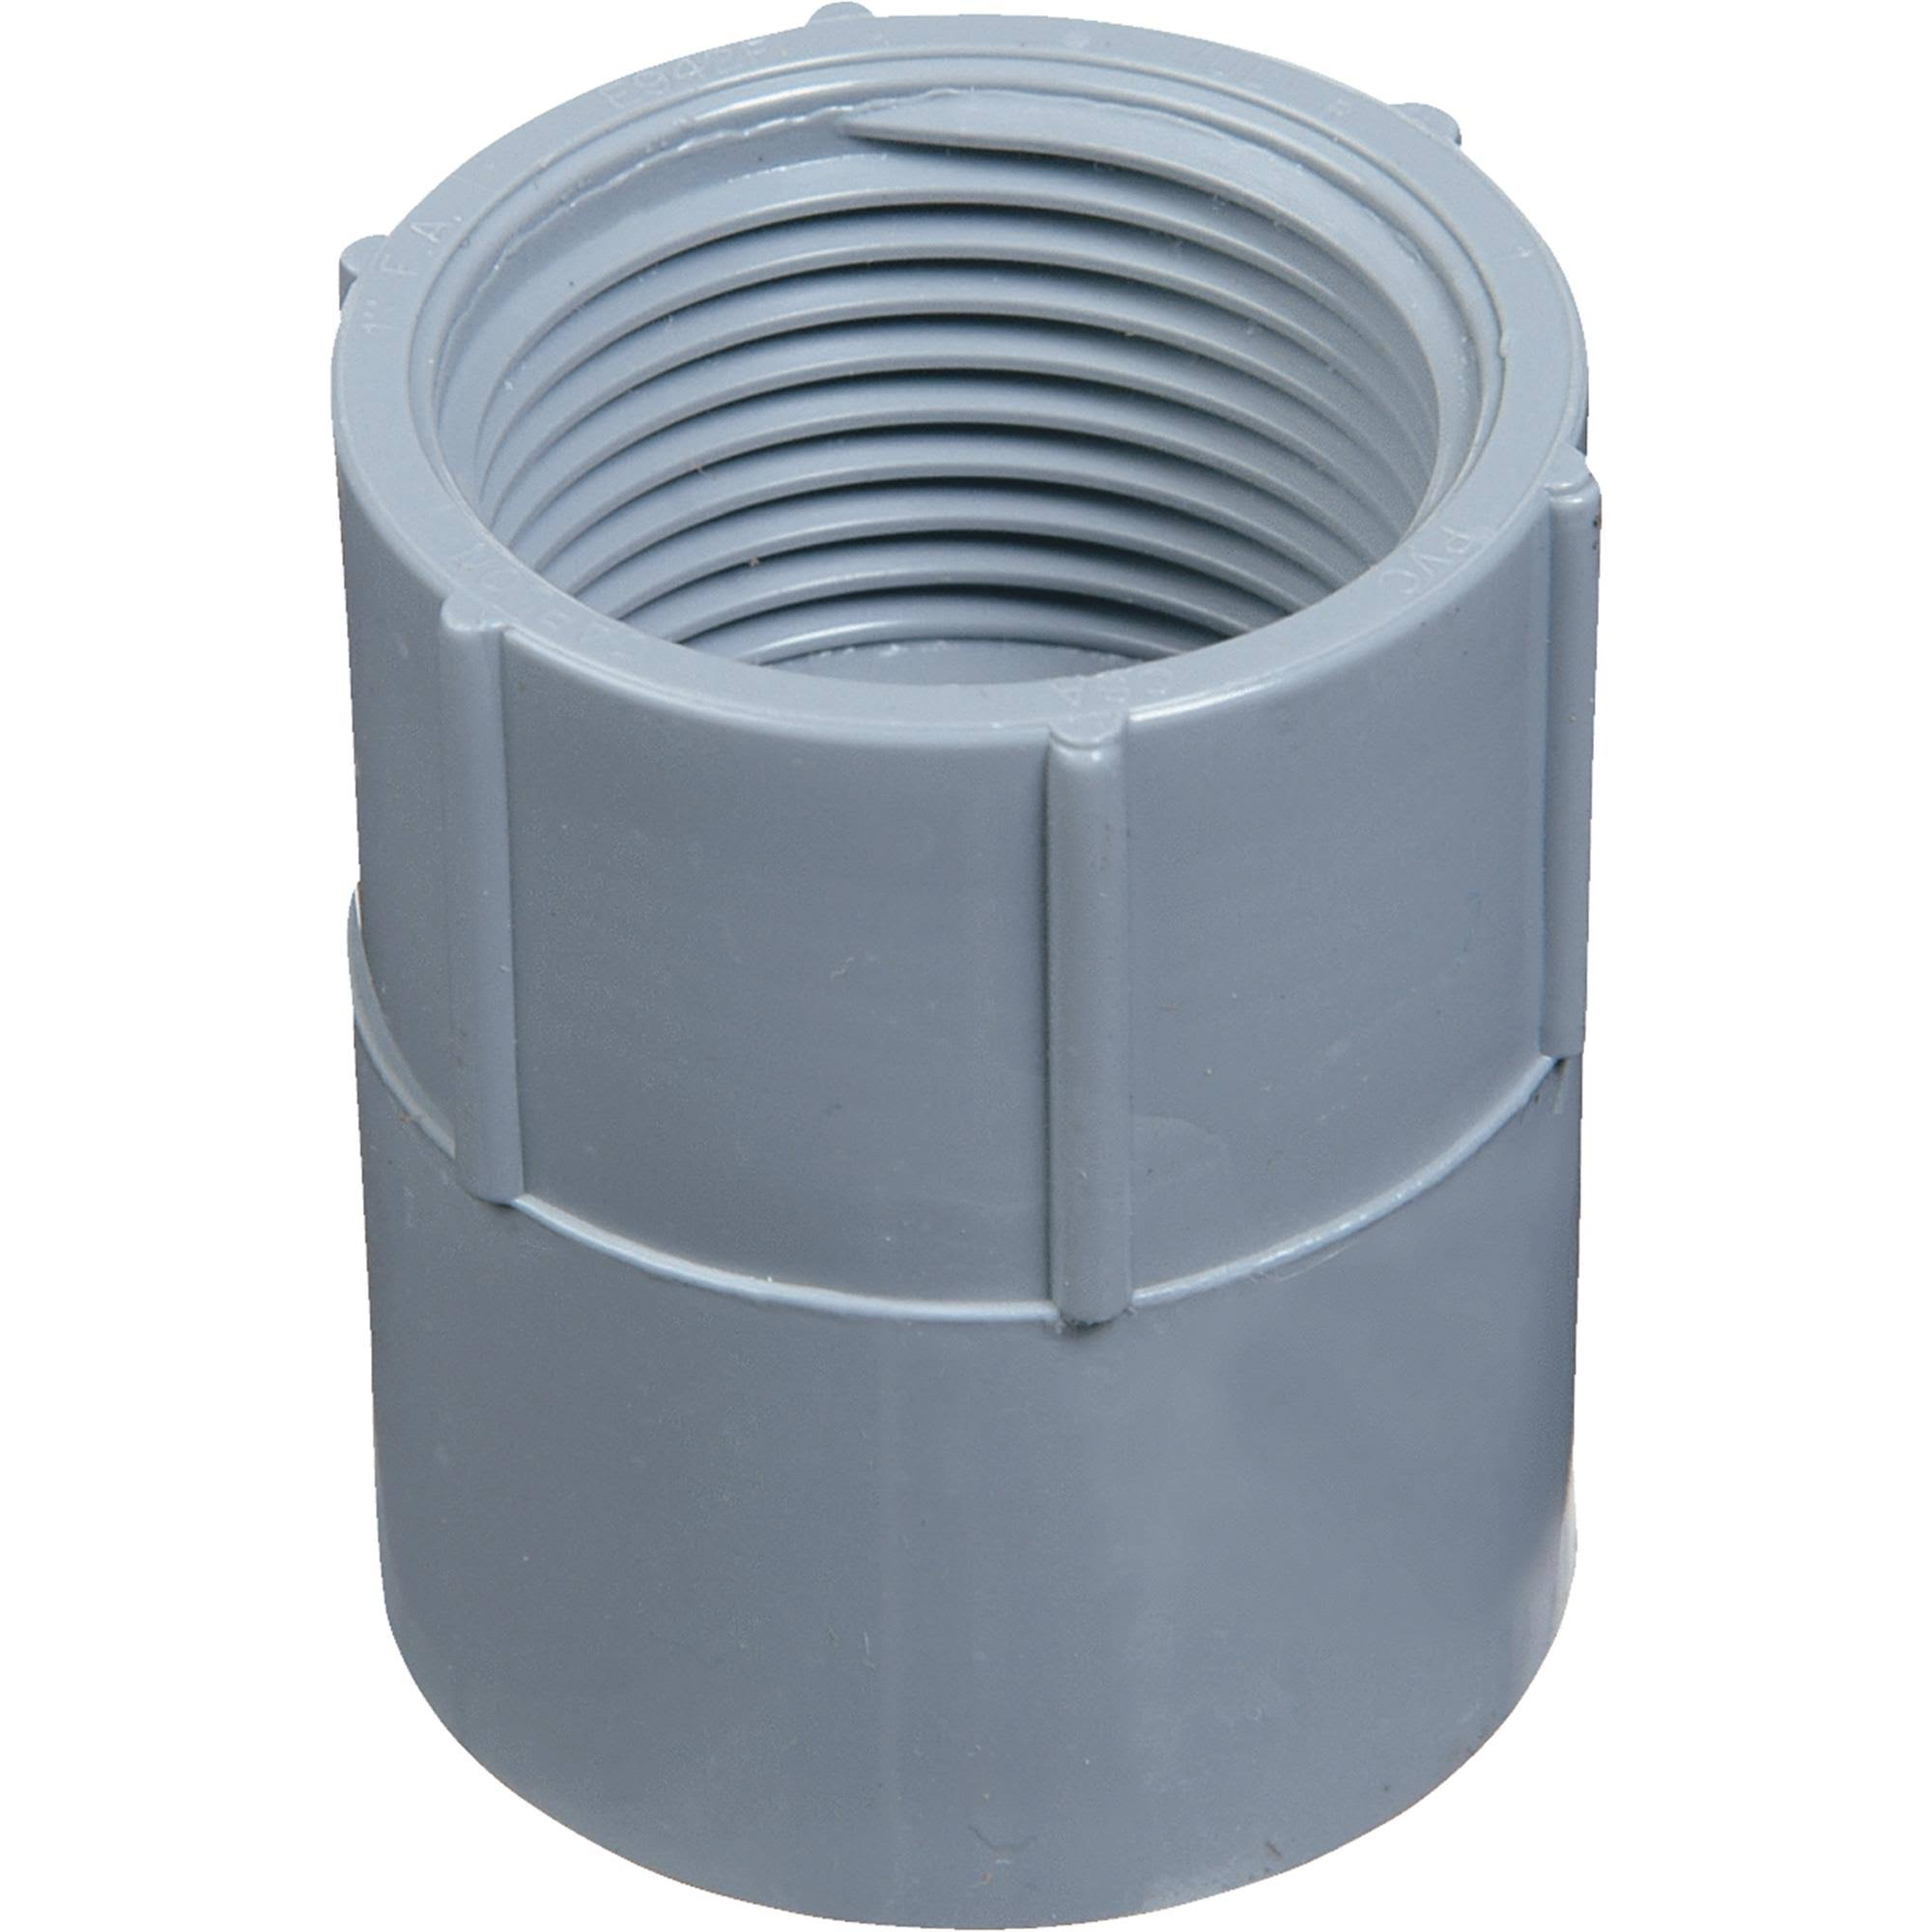 Thomas & Betts Female Adapter - 1in